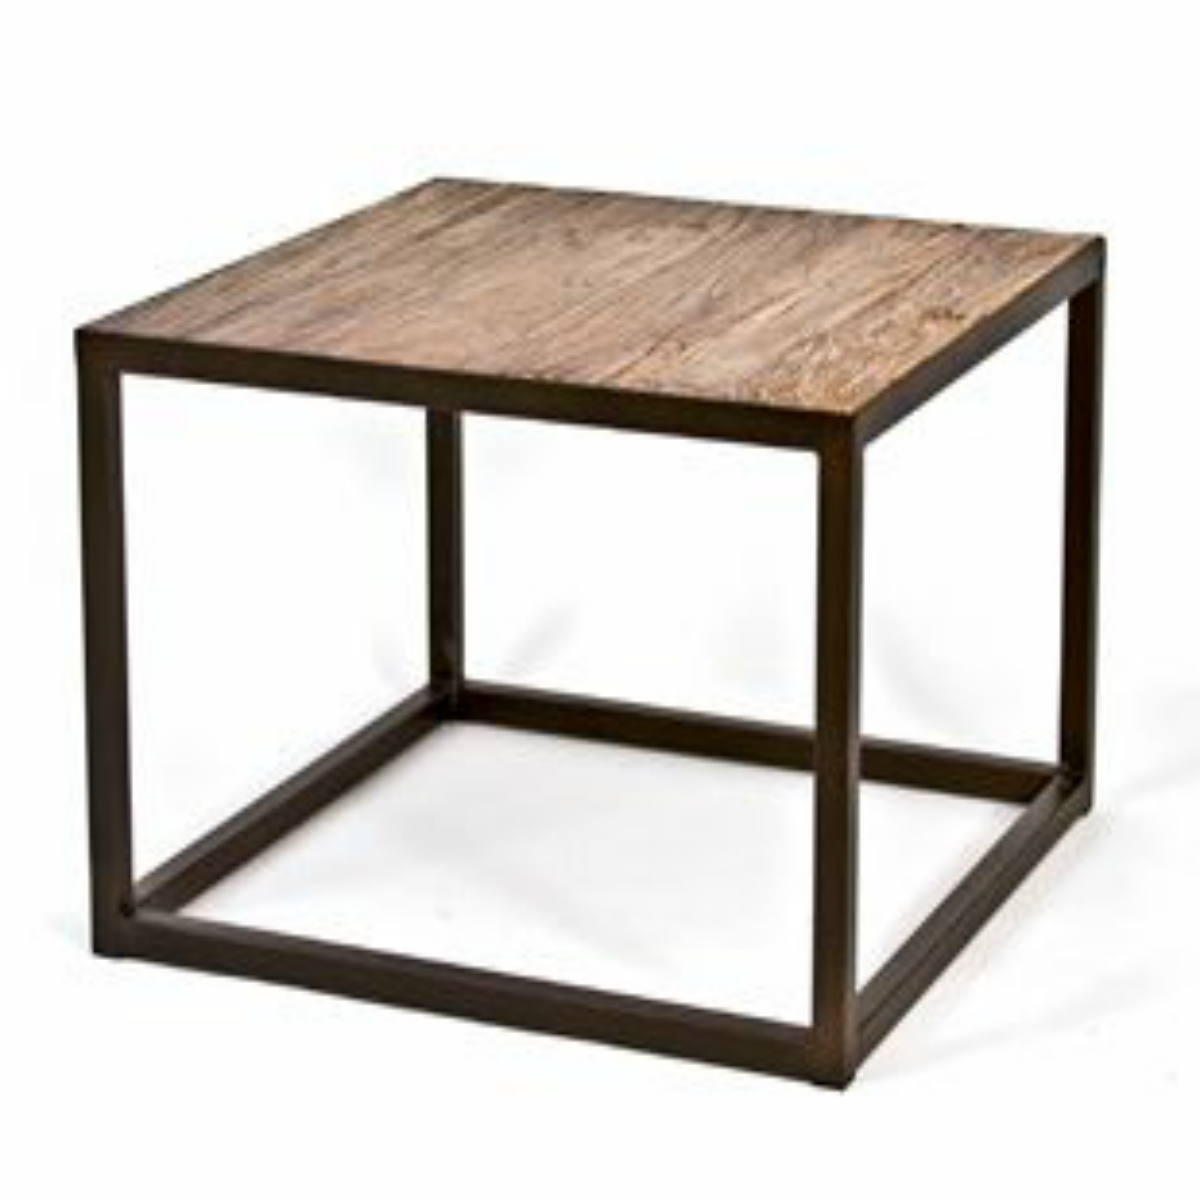 kona rectangular metal and elm side table sku accent corner console wedge shaped small bedside with drawers target drawer patio pagoda garden furniture rattan door chest